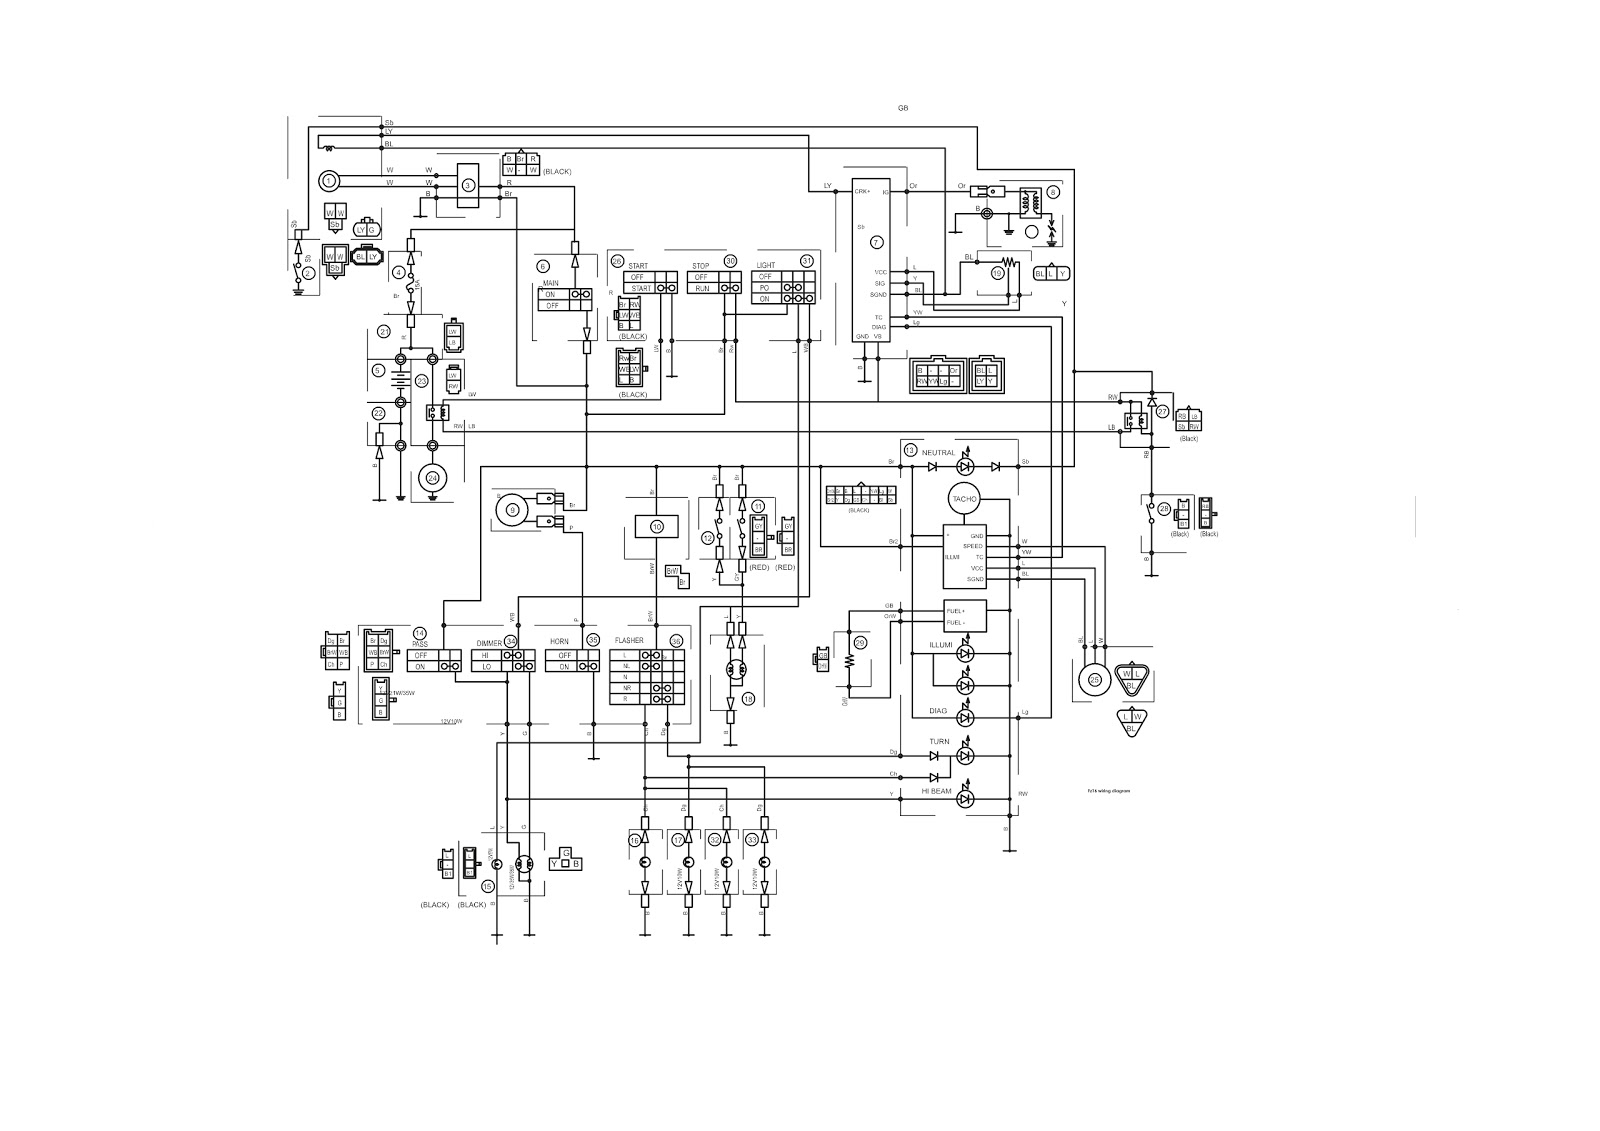 Electrical Wiring Diagram Of Yamaha Sz R 1994 Fzr 1000 Color Fz16 With Techy At Day Blogger Noon And A